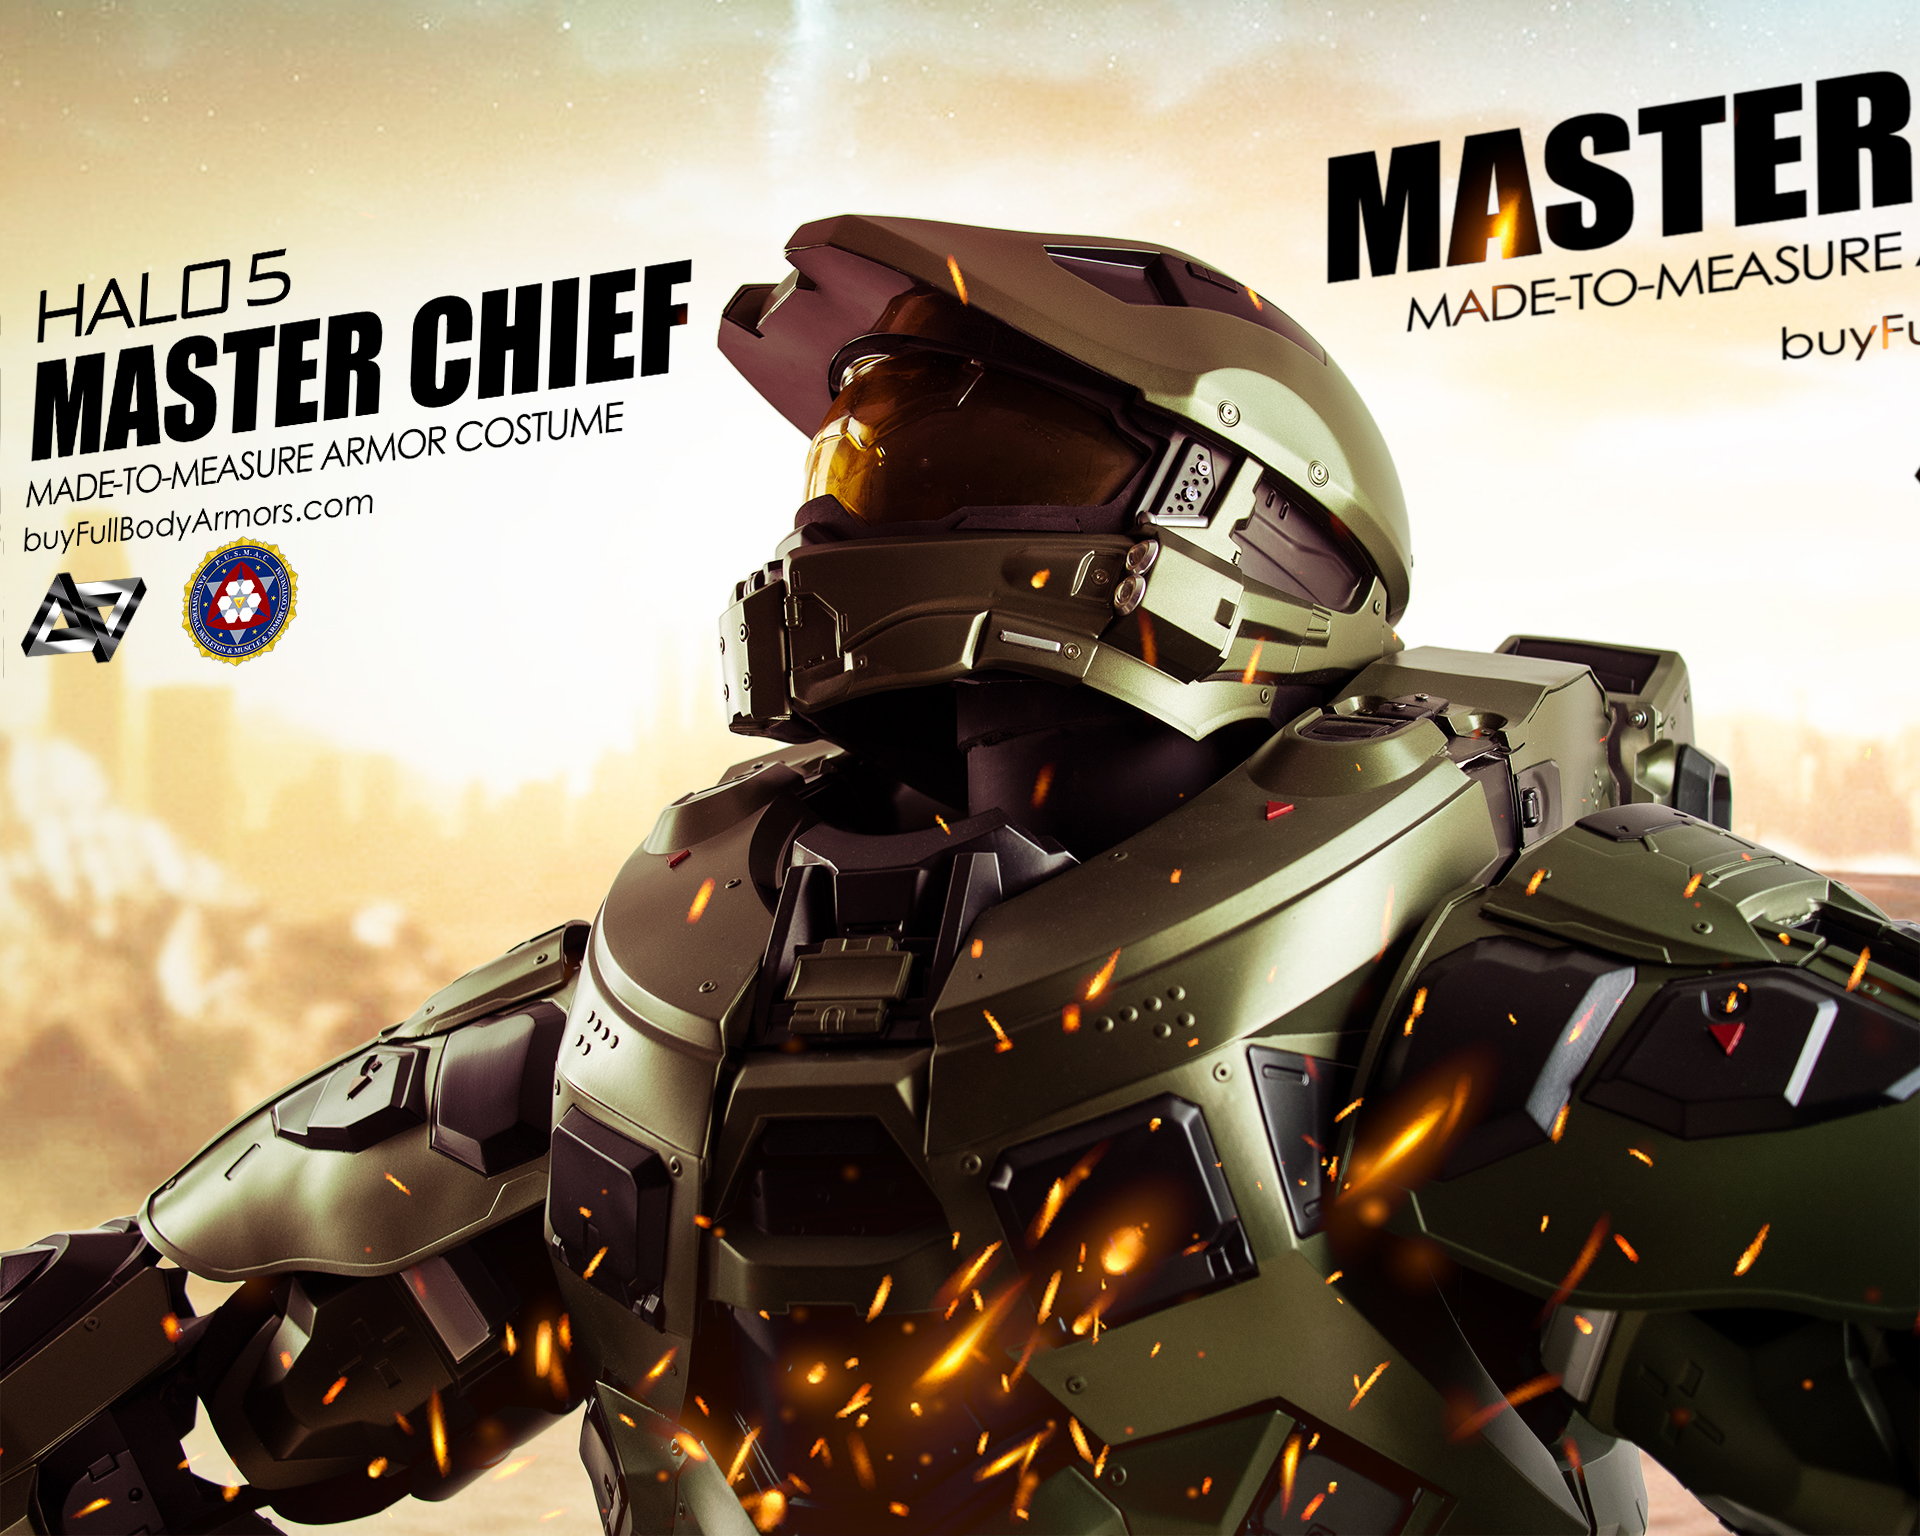 Halo 5 Master Chief Armor Suit Costume on crate 2